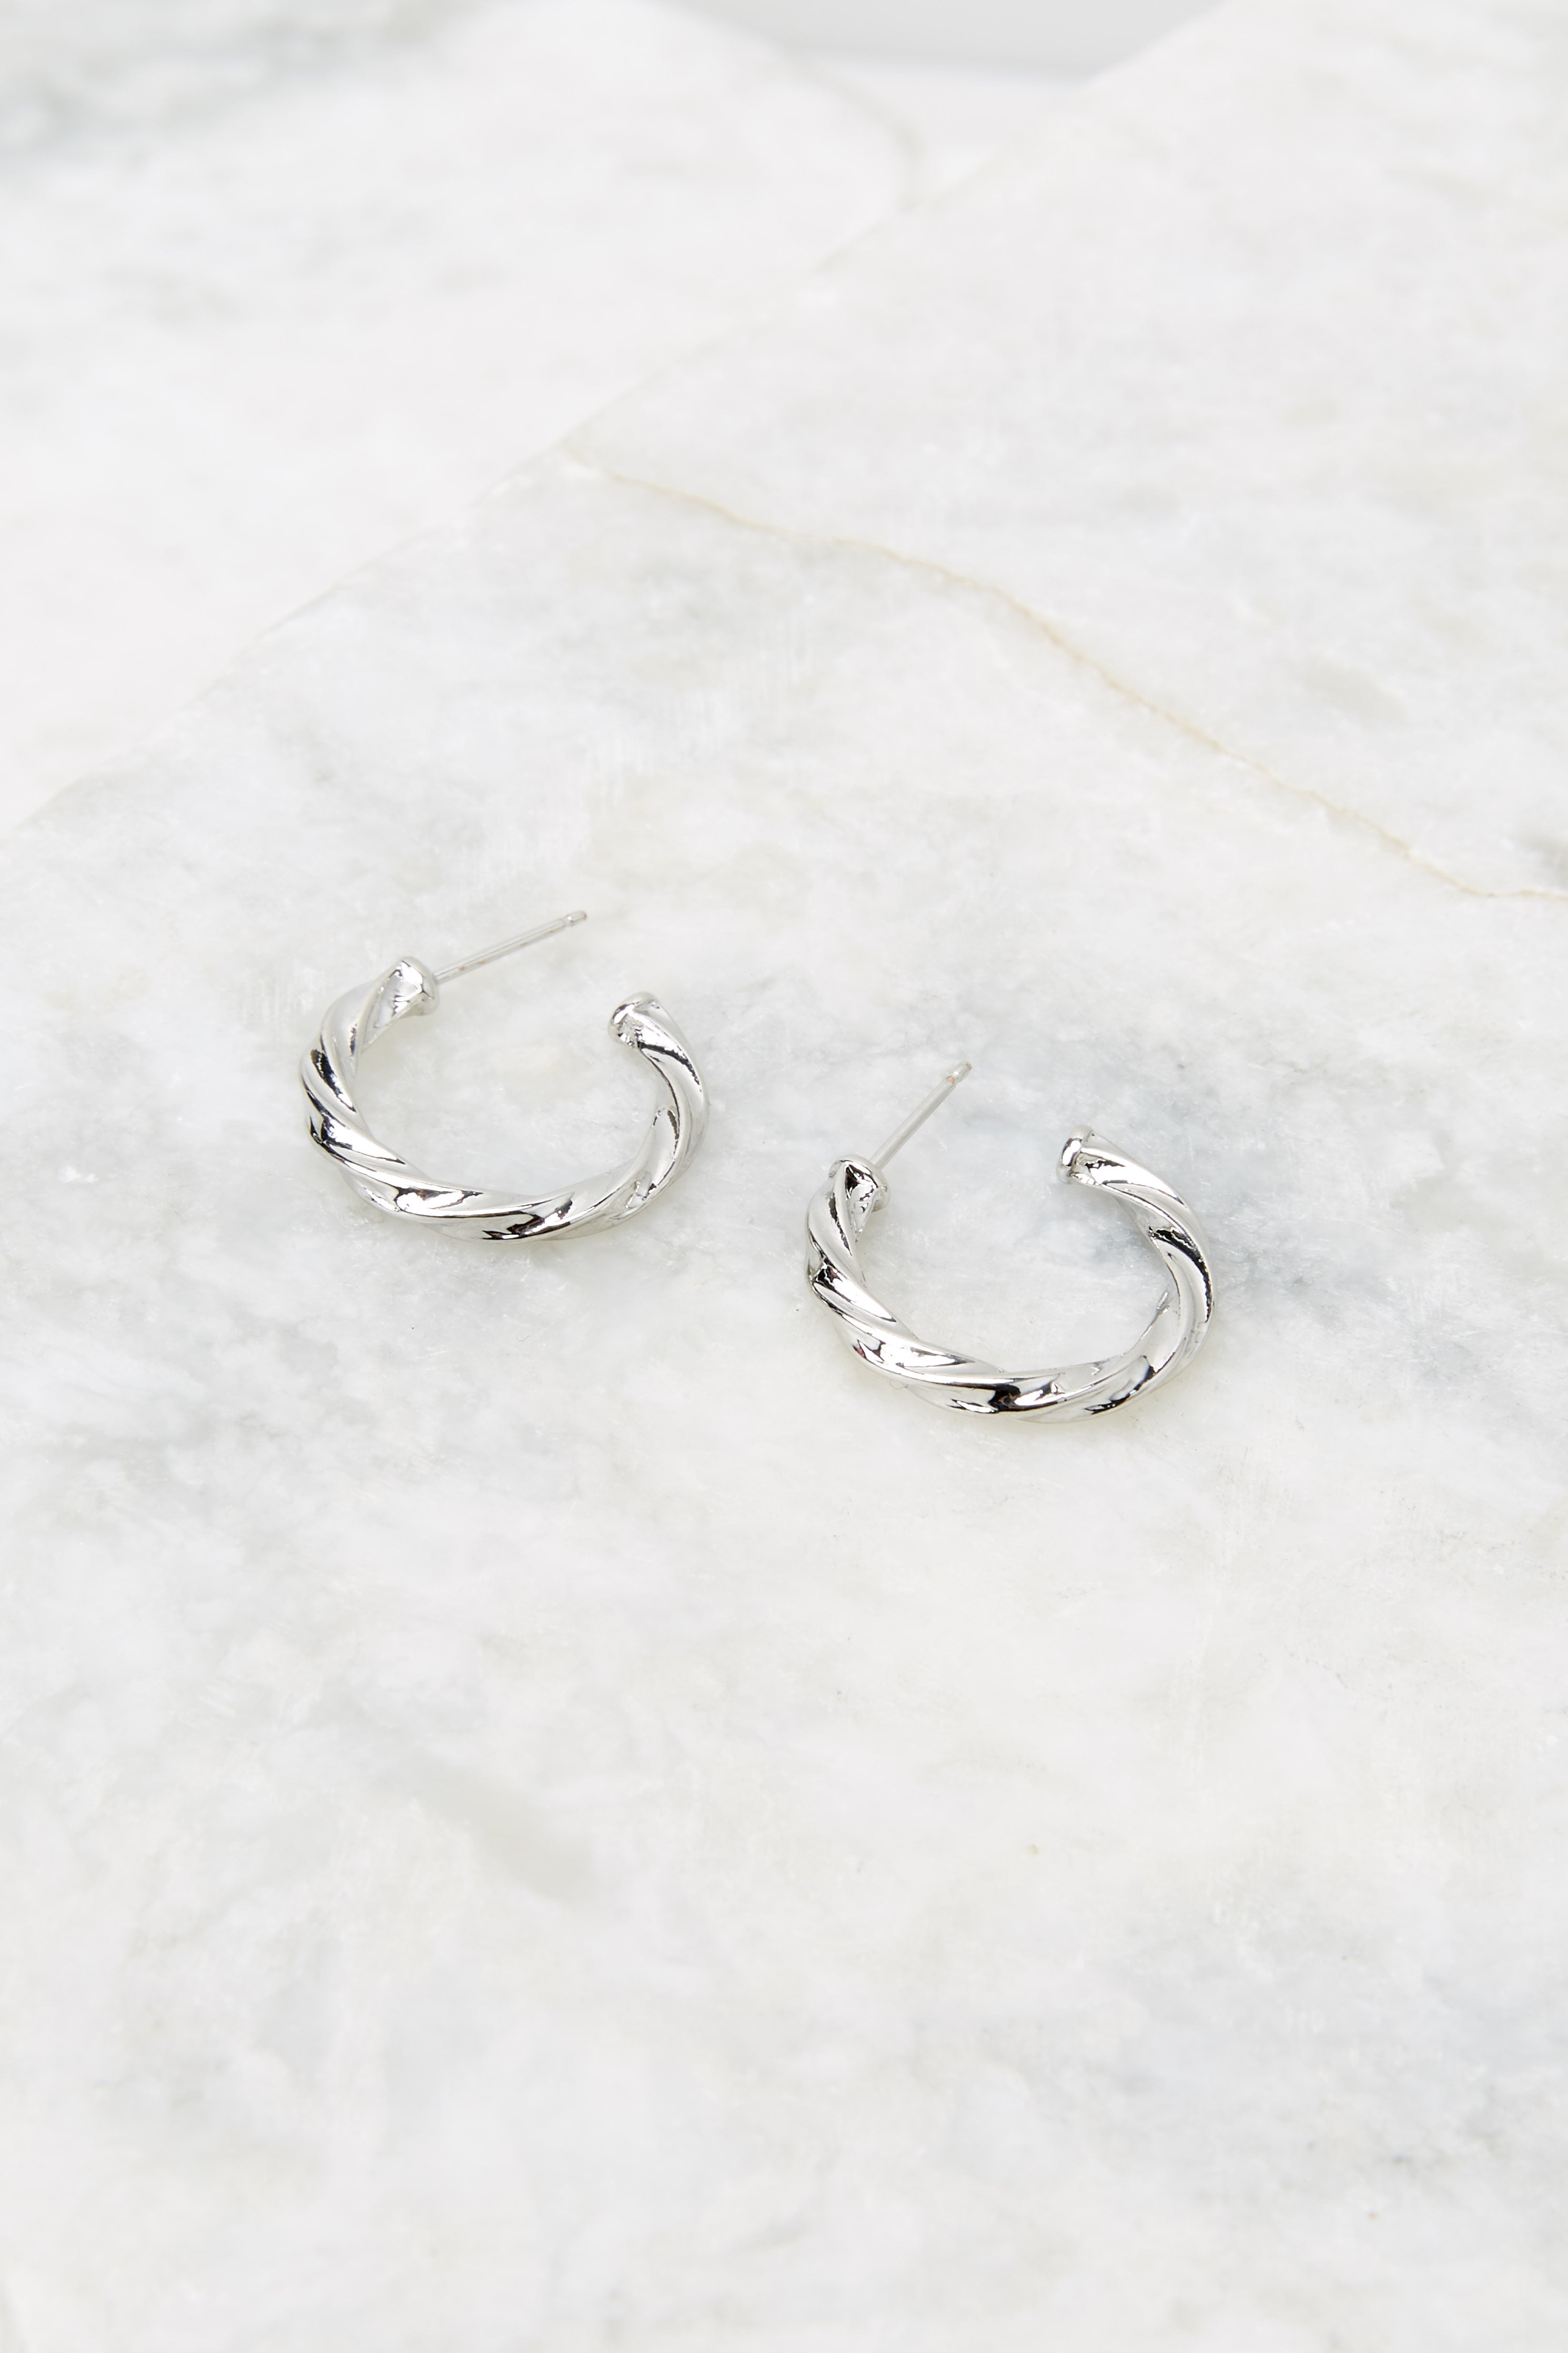 3 Let Them Stare White Gold Small Hoops at reddress.com